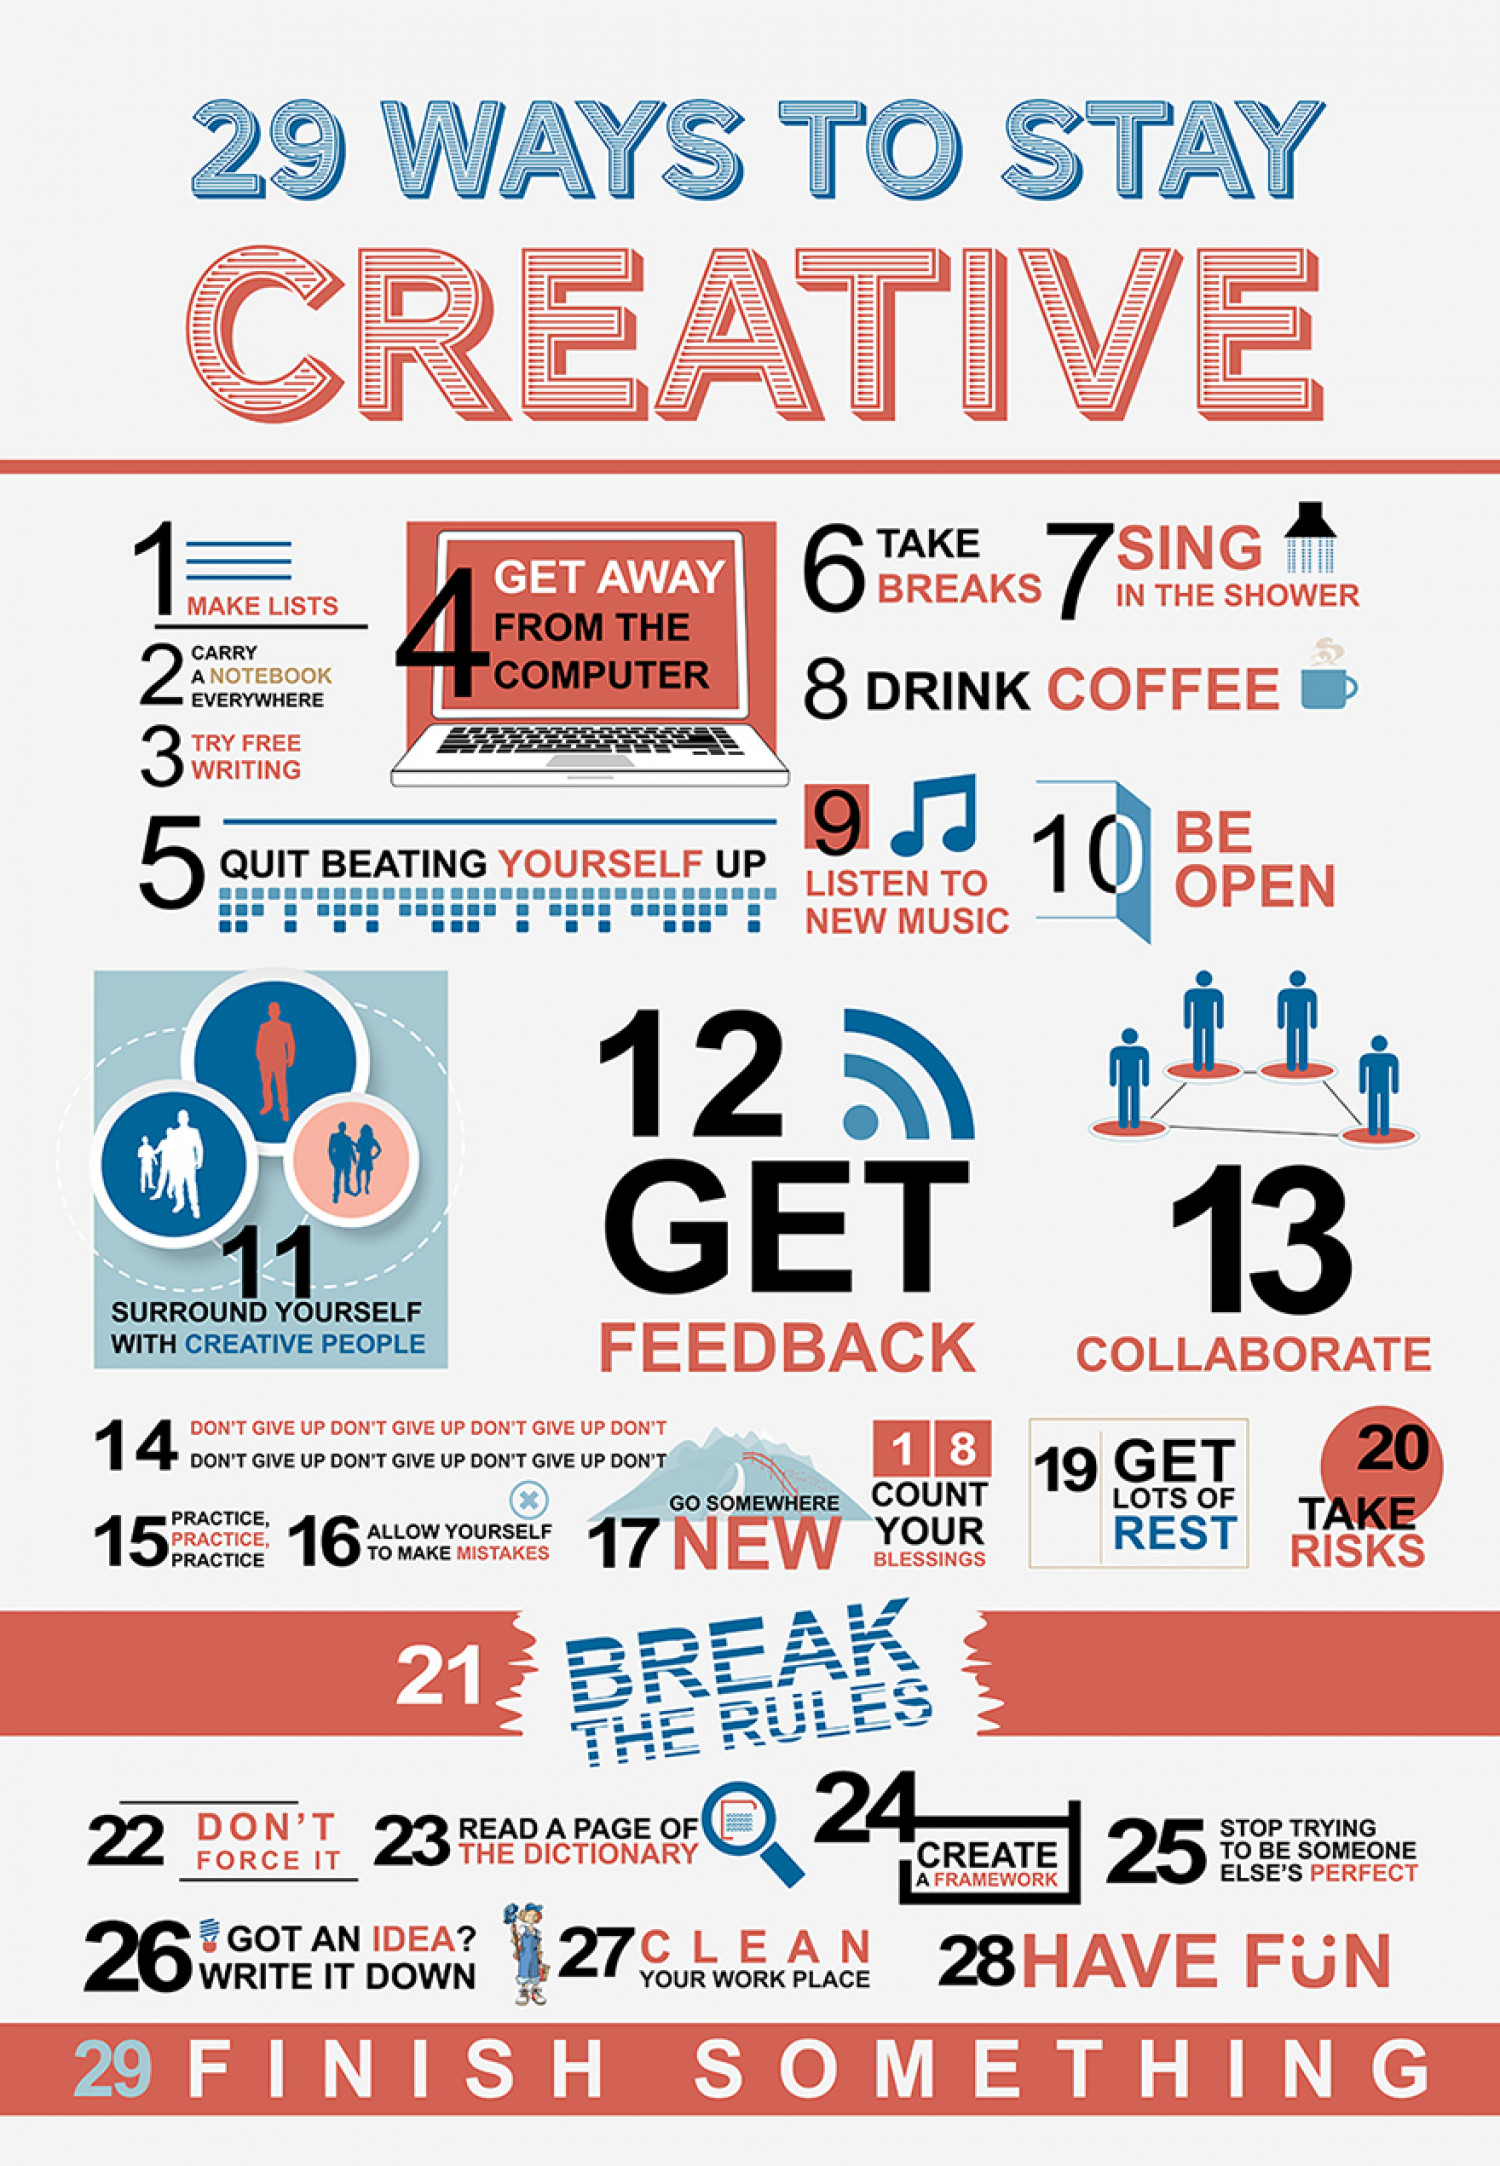 29 ways to stay creative | visual.ly